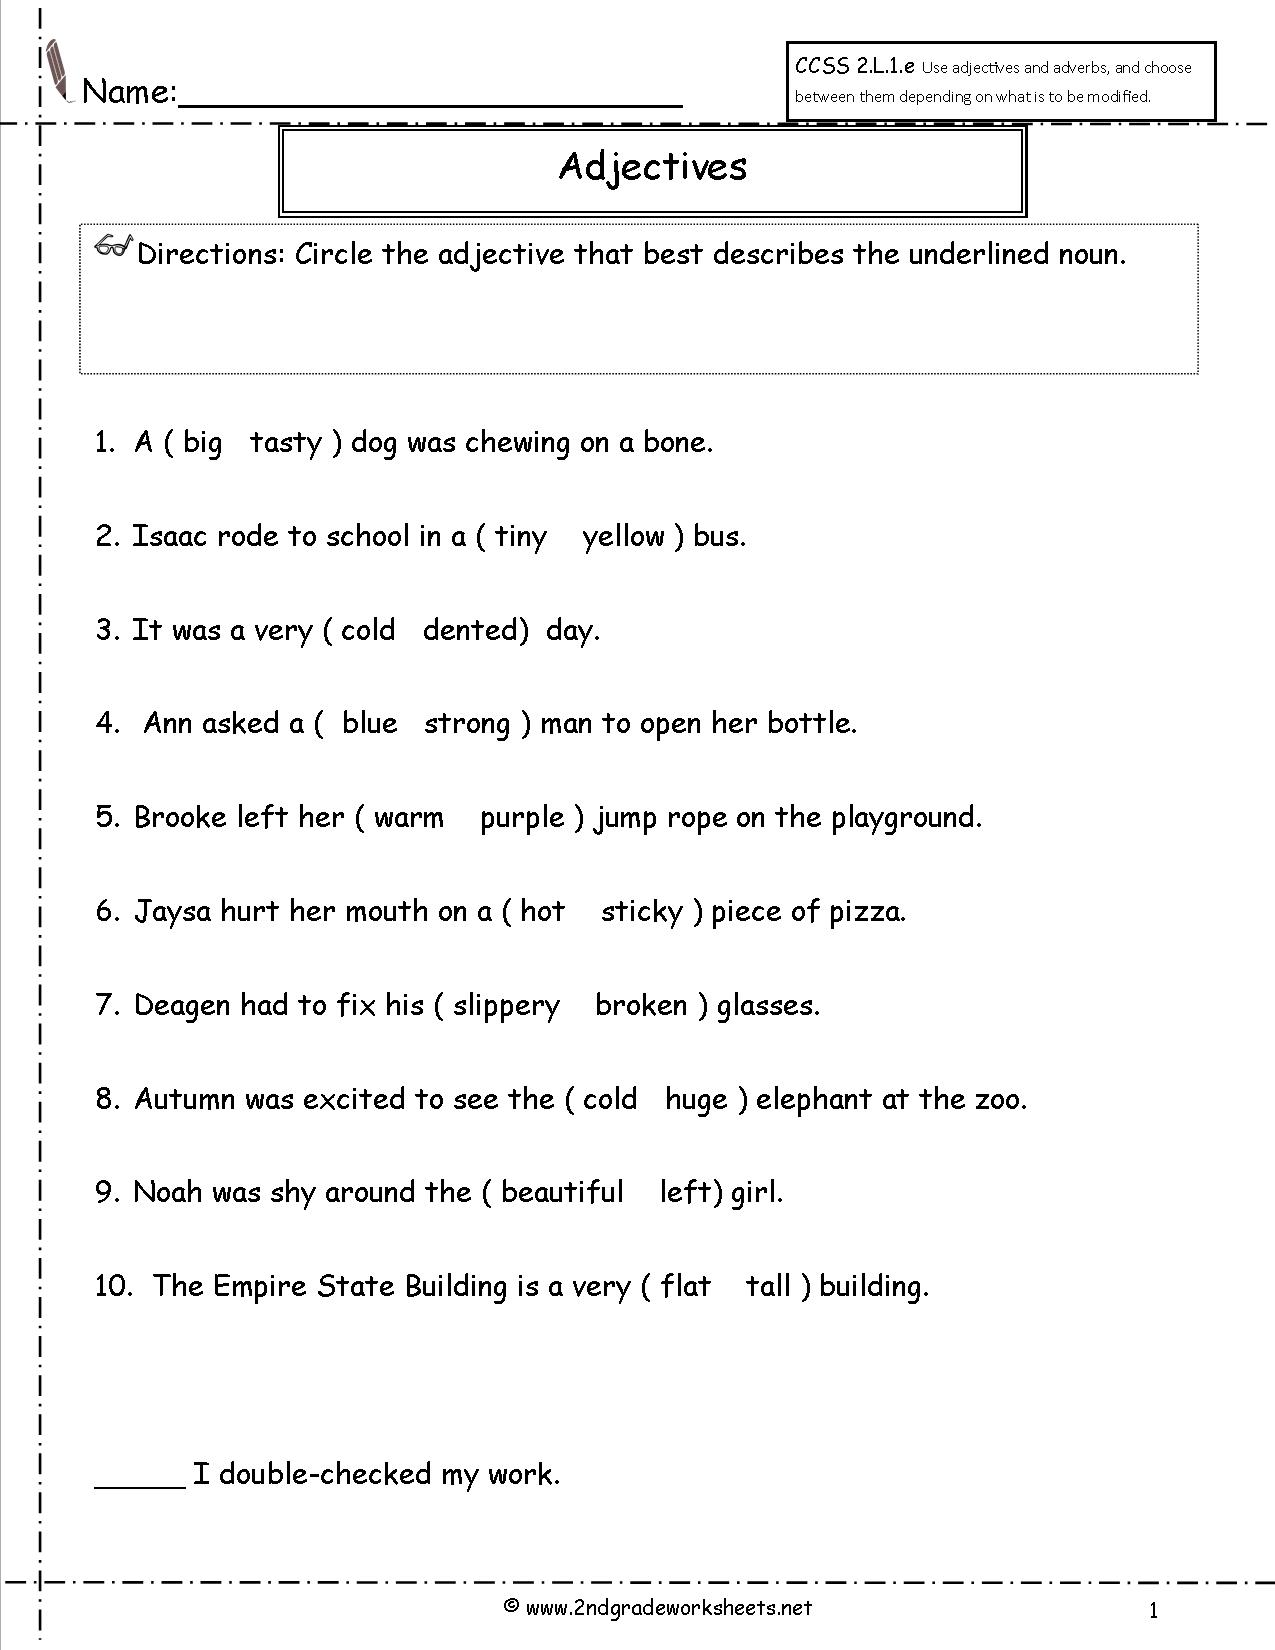 worksheet Free Adjective Worksheets free using adjectives worksheets worksheet